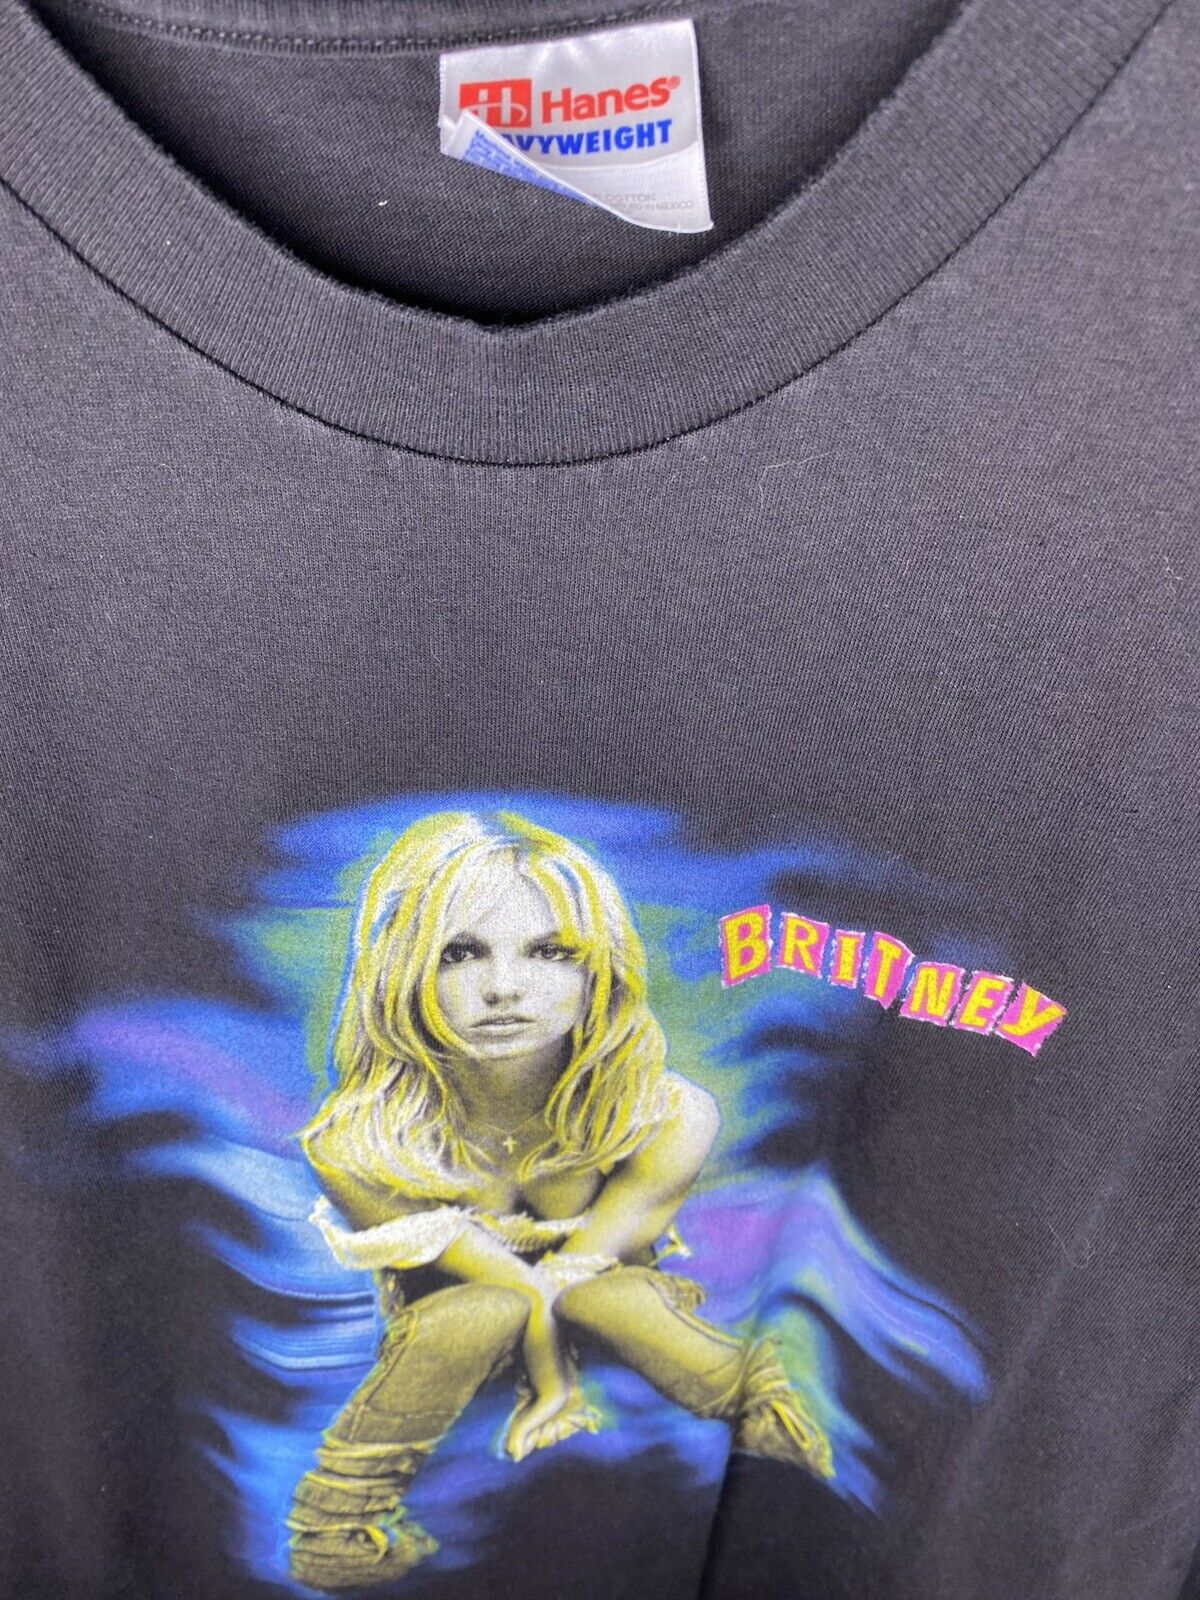 Vintage Britney Spears T Shirt 2001 The Britney T… - image 2